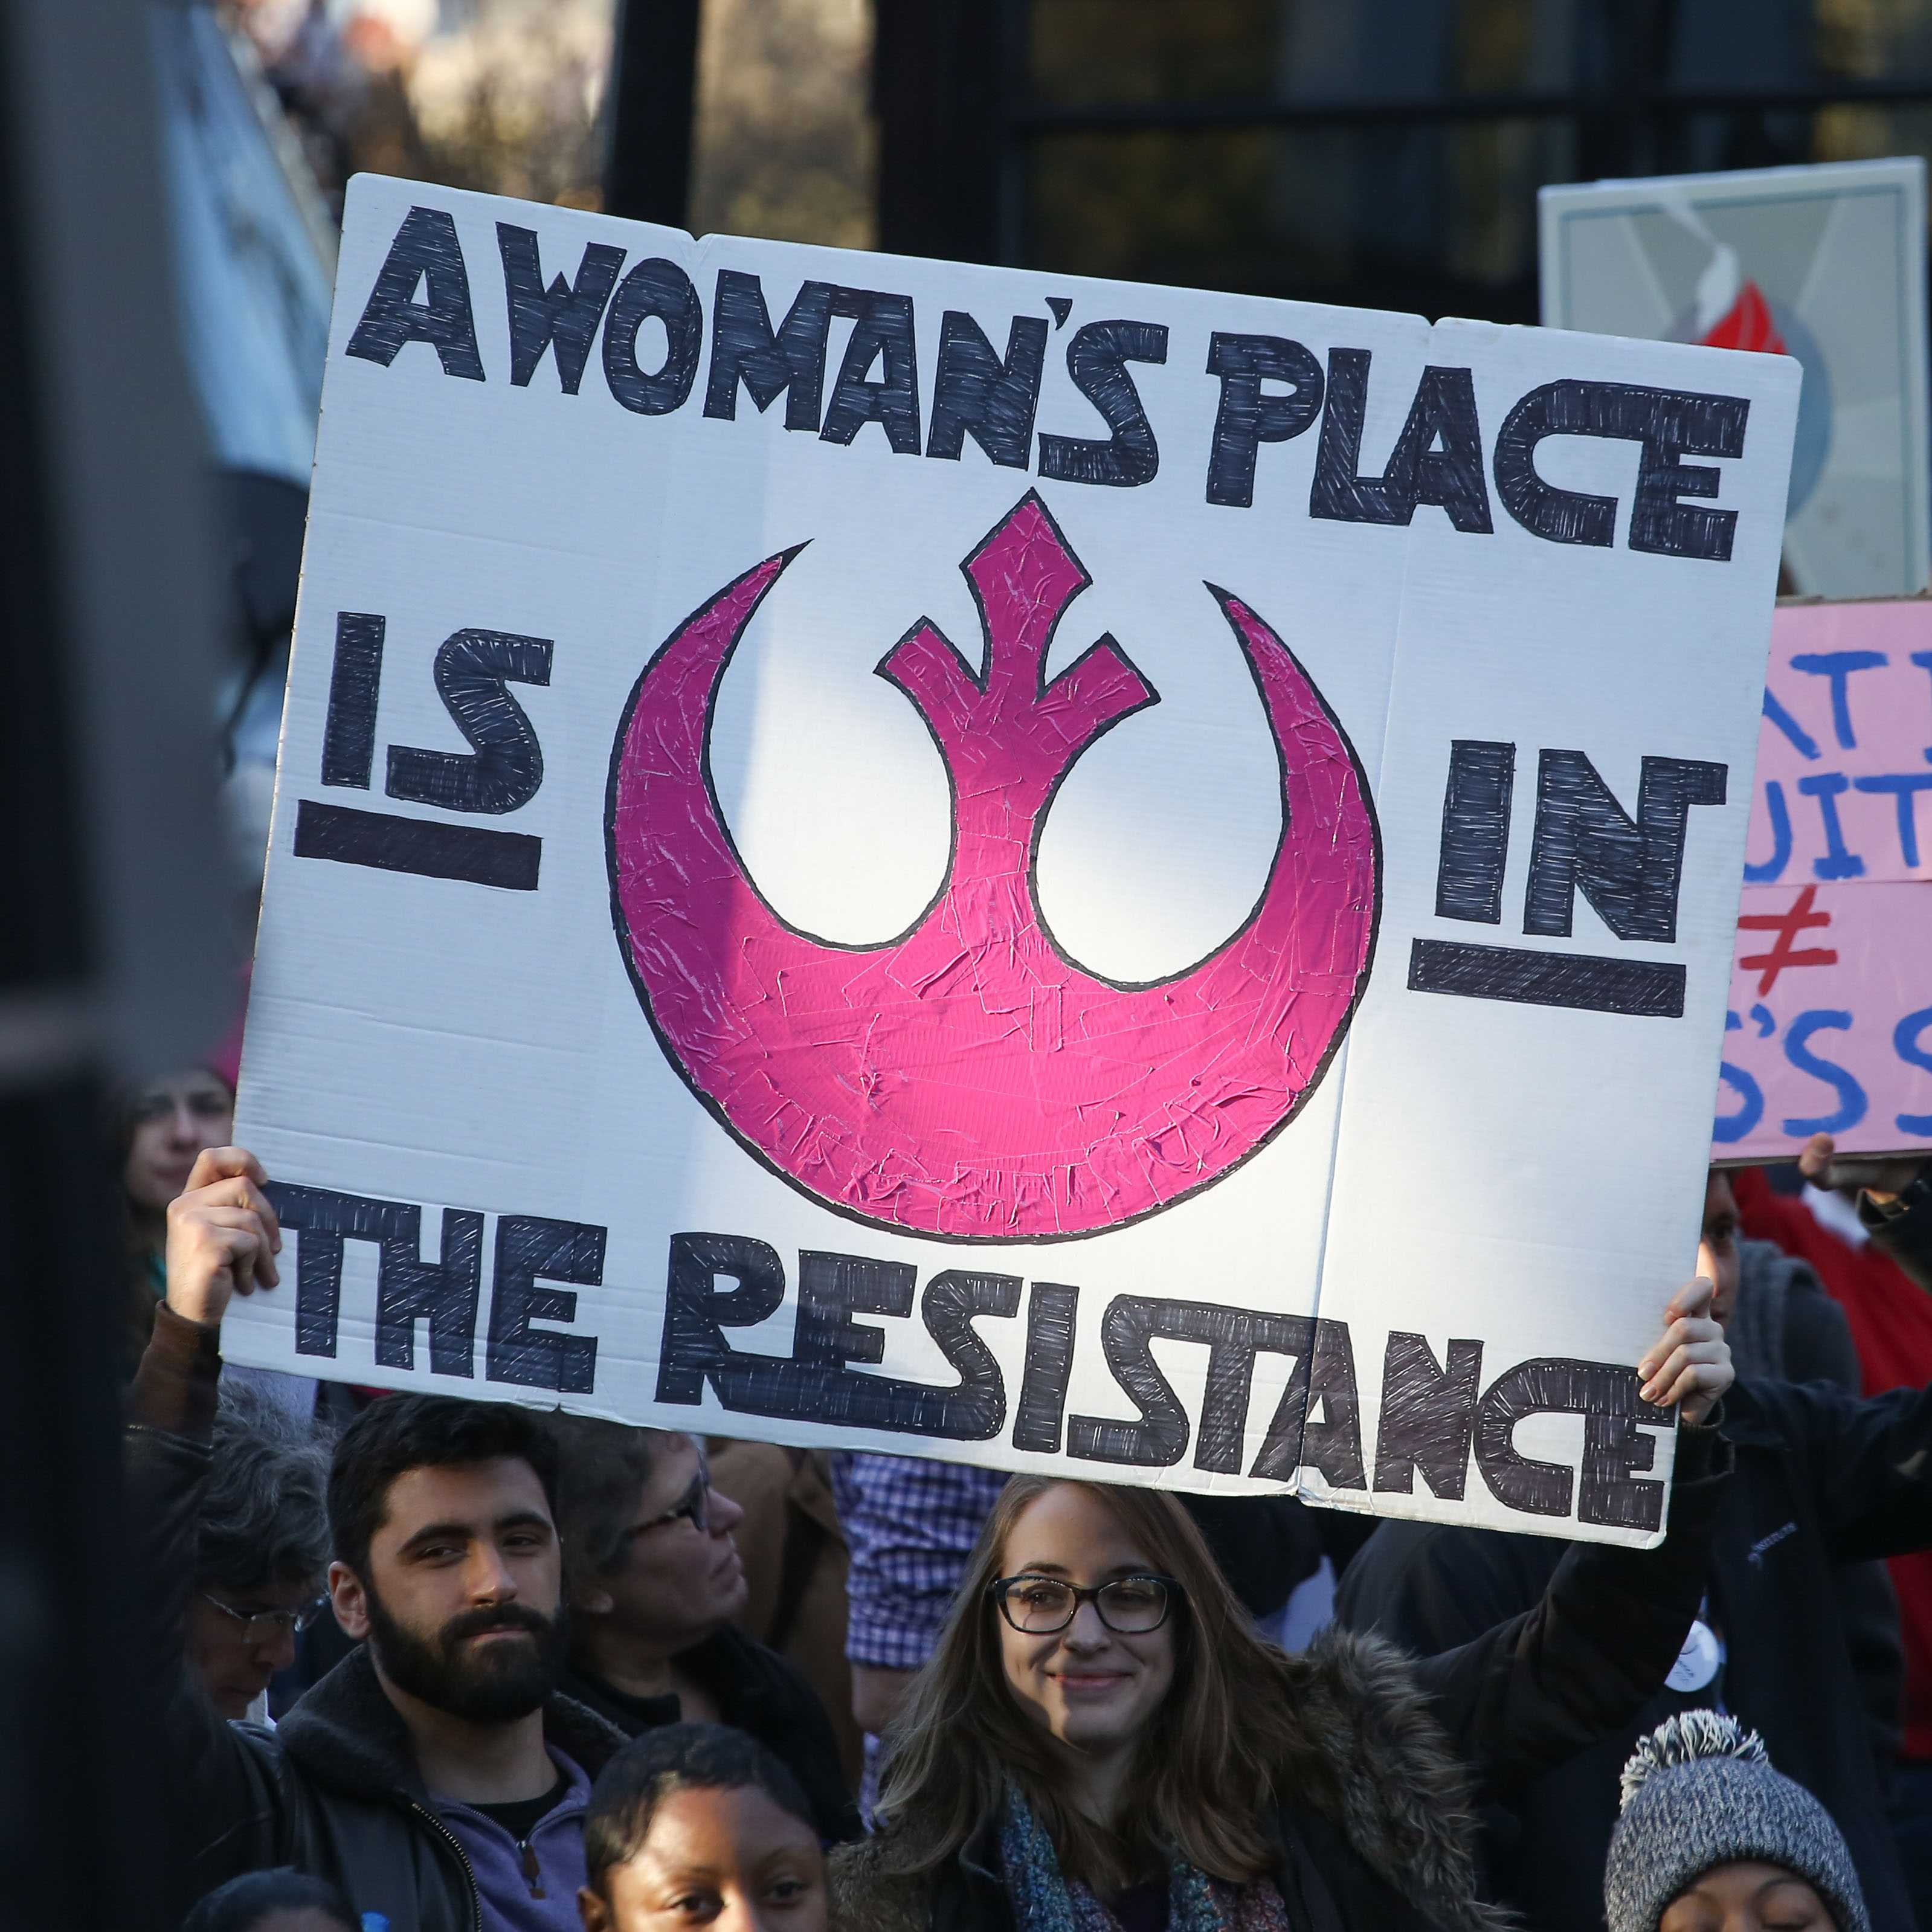 In+the+wake+of+Carrie+Fisher%27s+passing%2C+many+participants+of+women%27s+marches+across+the+world+referenced+the+bravery+and+hope+of+the+Star+Wars+franchise+in+their+posters+and+signs.